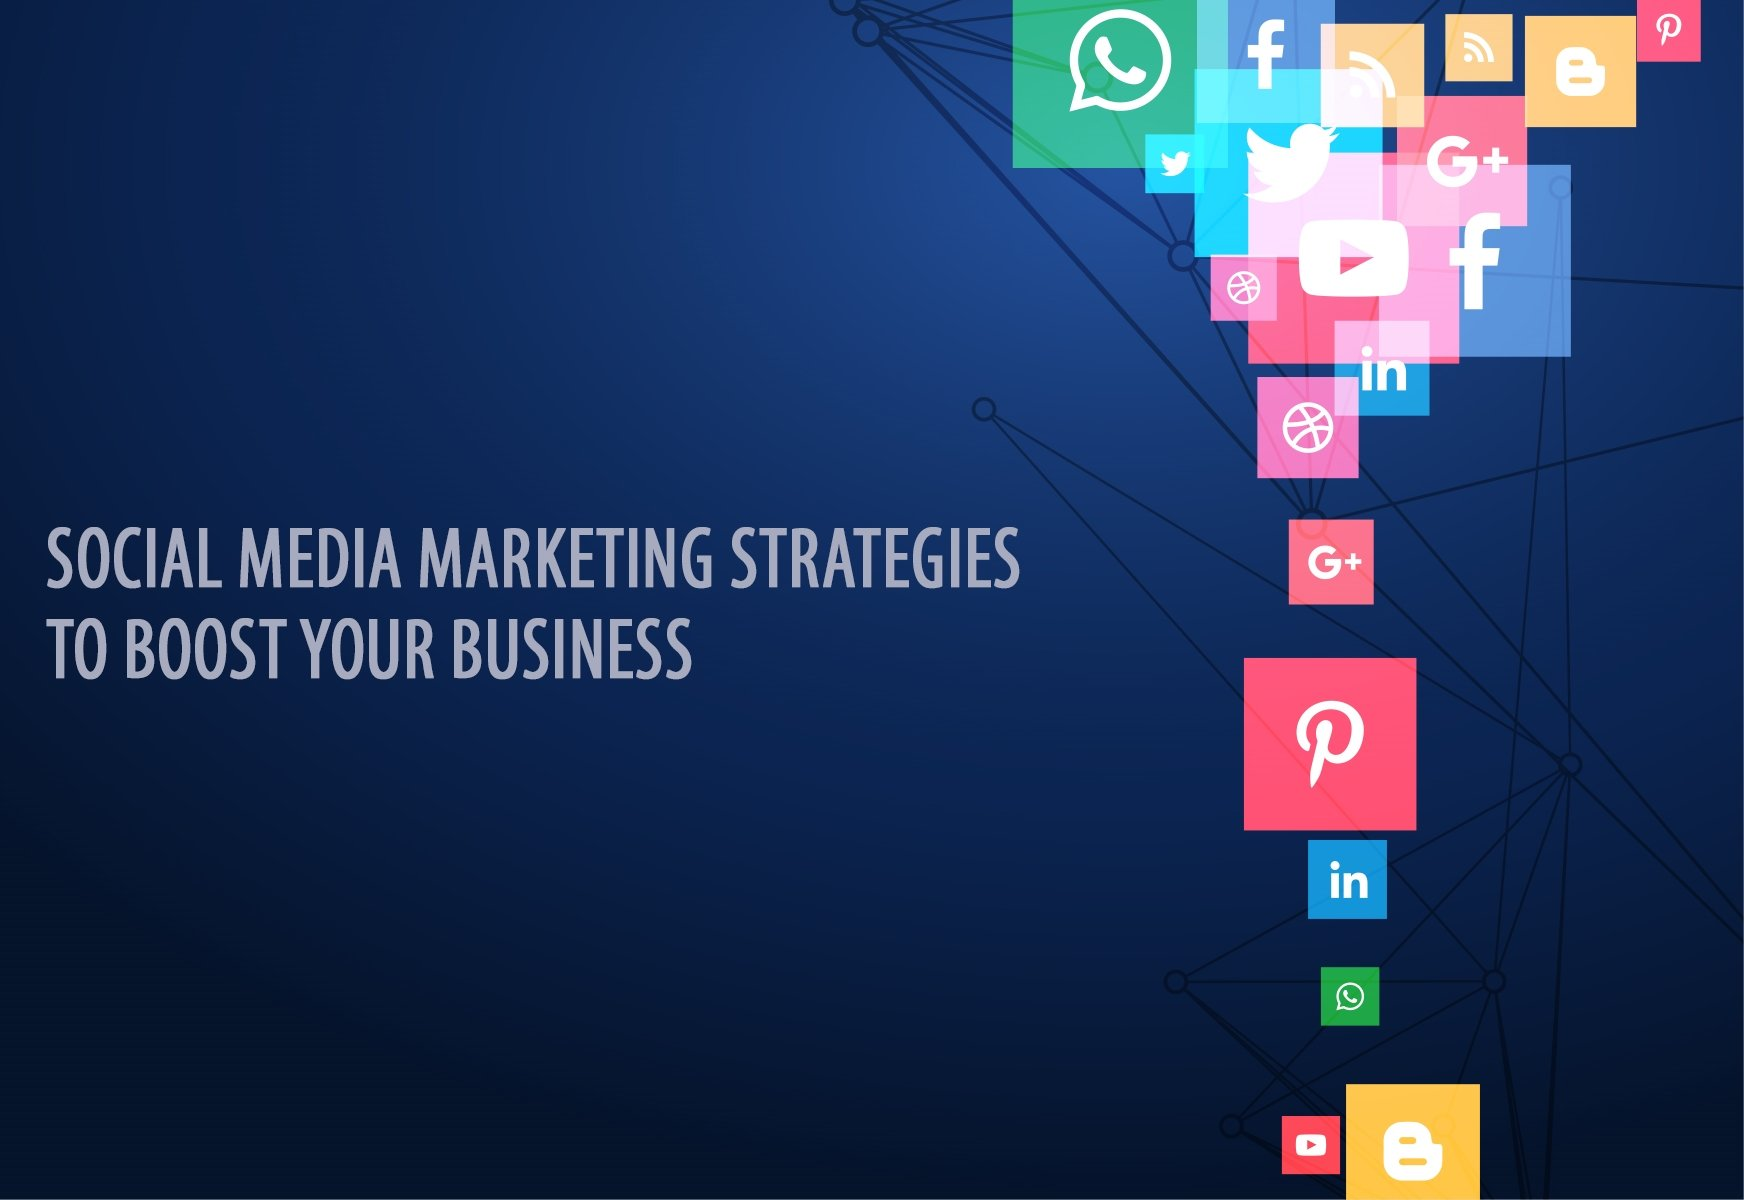 Social Media Marketing Strategies To Boost Your Business